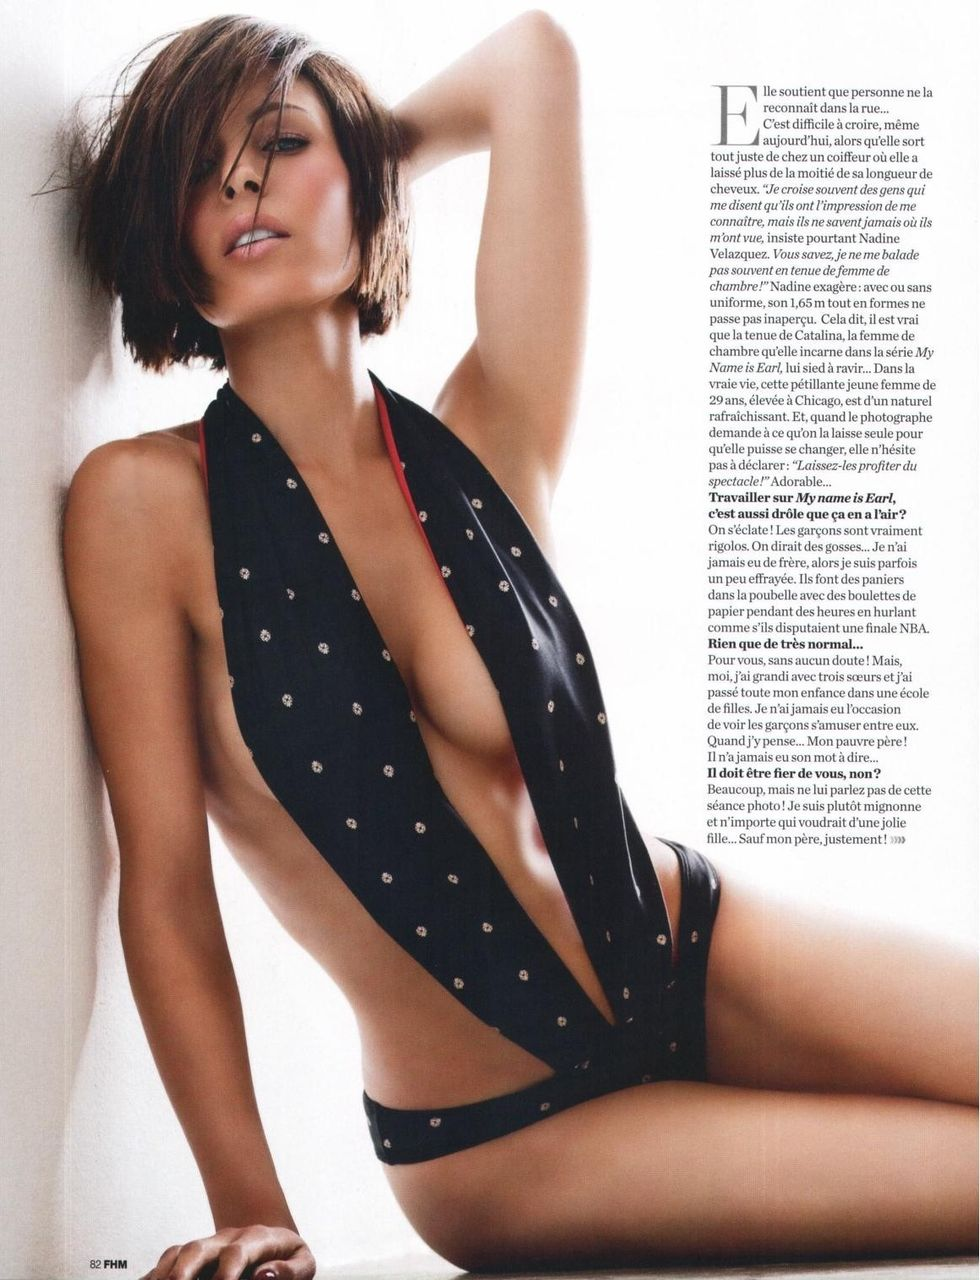 nadine-velazquez-fhm-magazine-april-2008-01